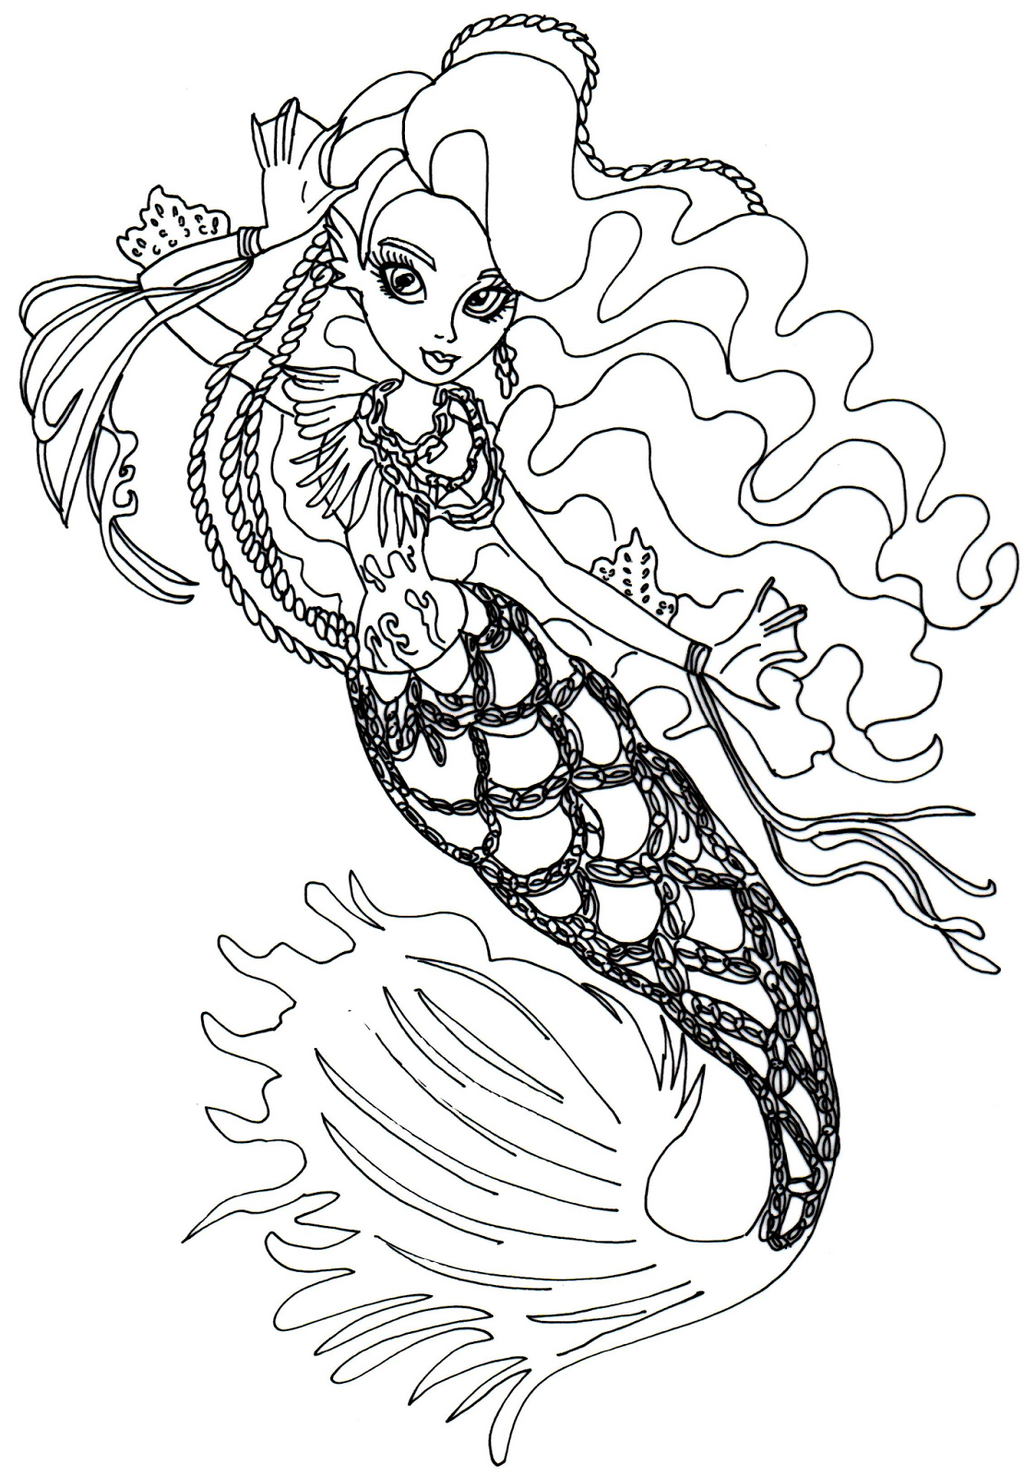 Fusion Sirena Von Boo From Monster High Coloring Pages